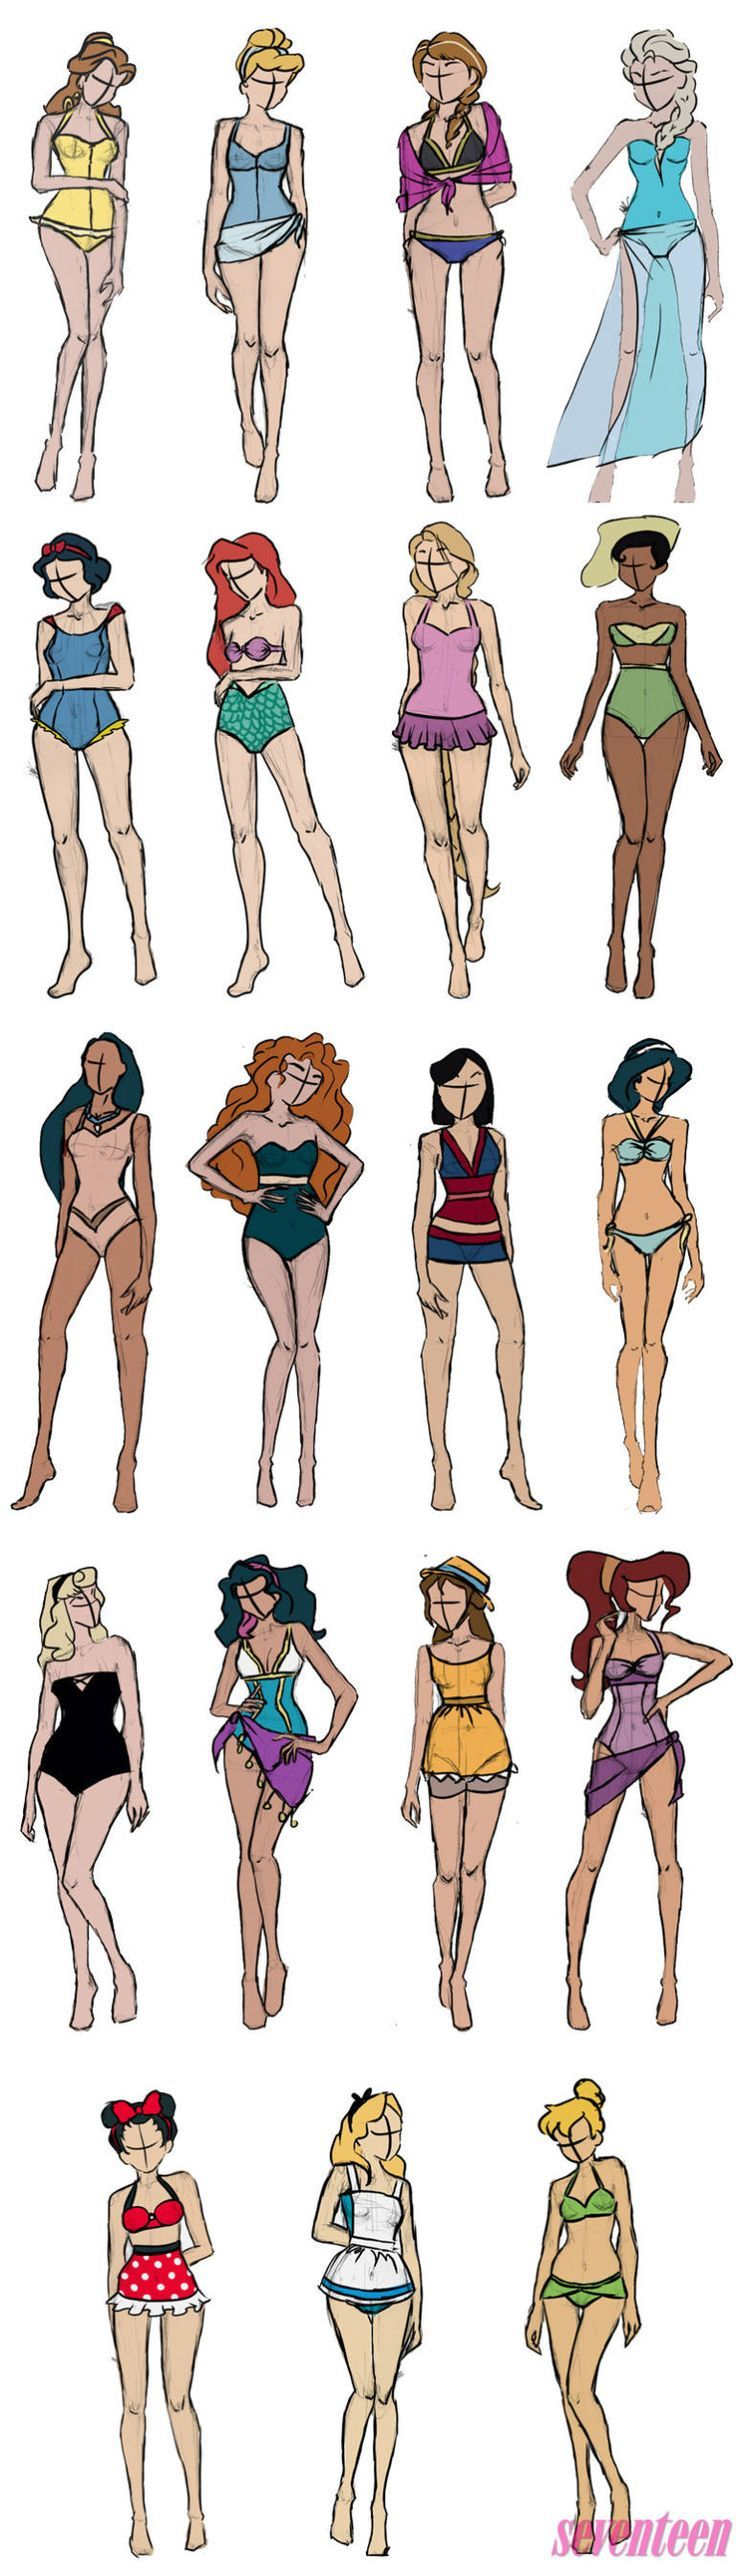 If the Disney Princesses Went on Spring